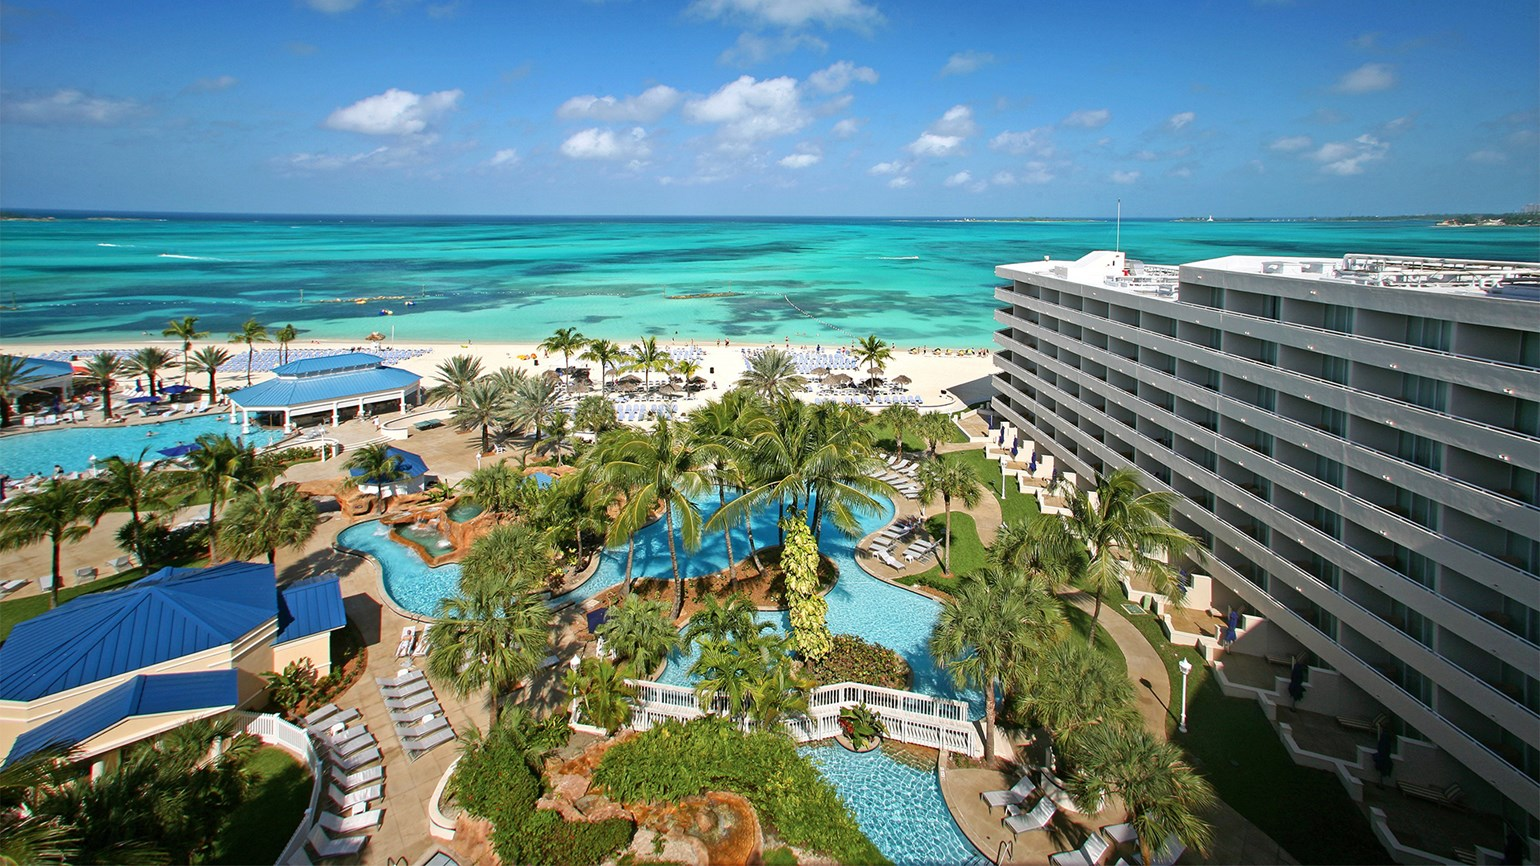 Melia Nassau Beach Flourishes In Shadow Of Baha Mar